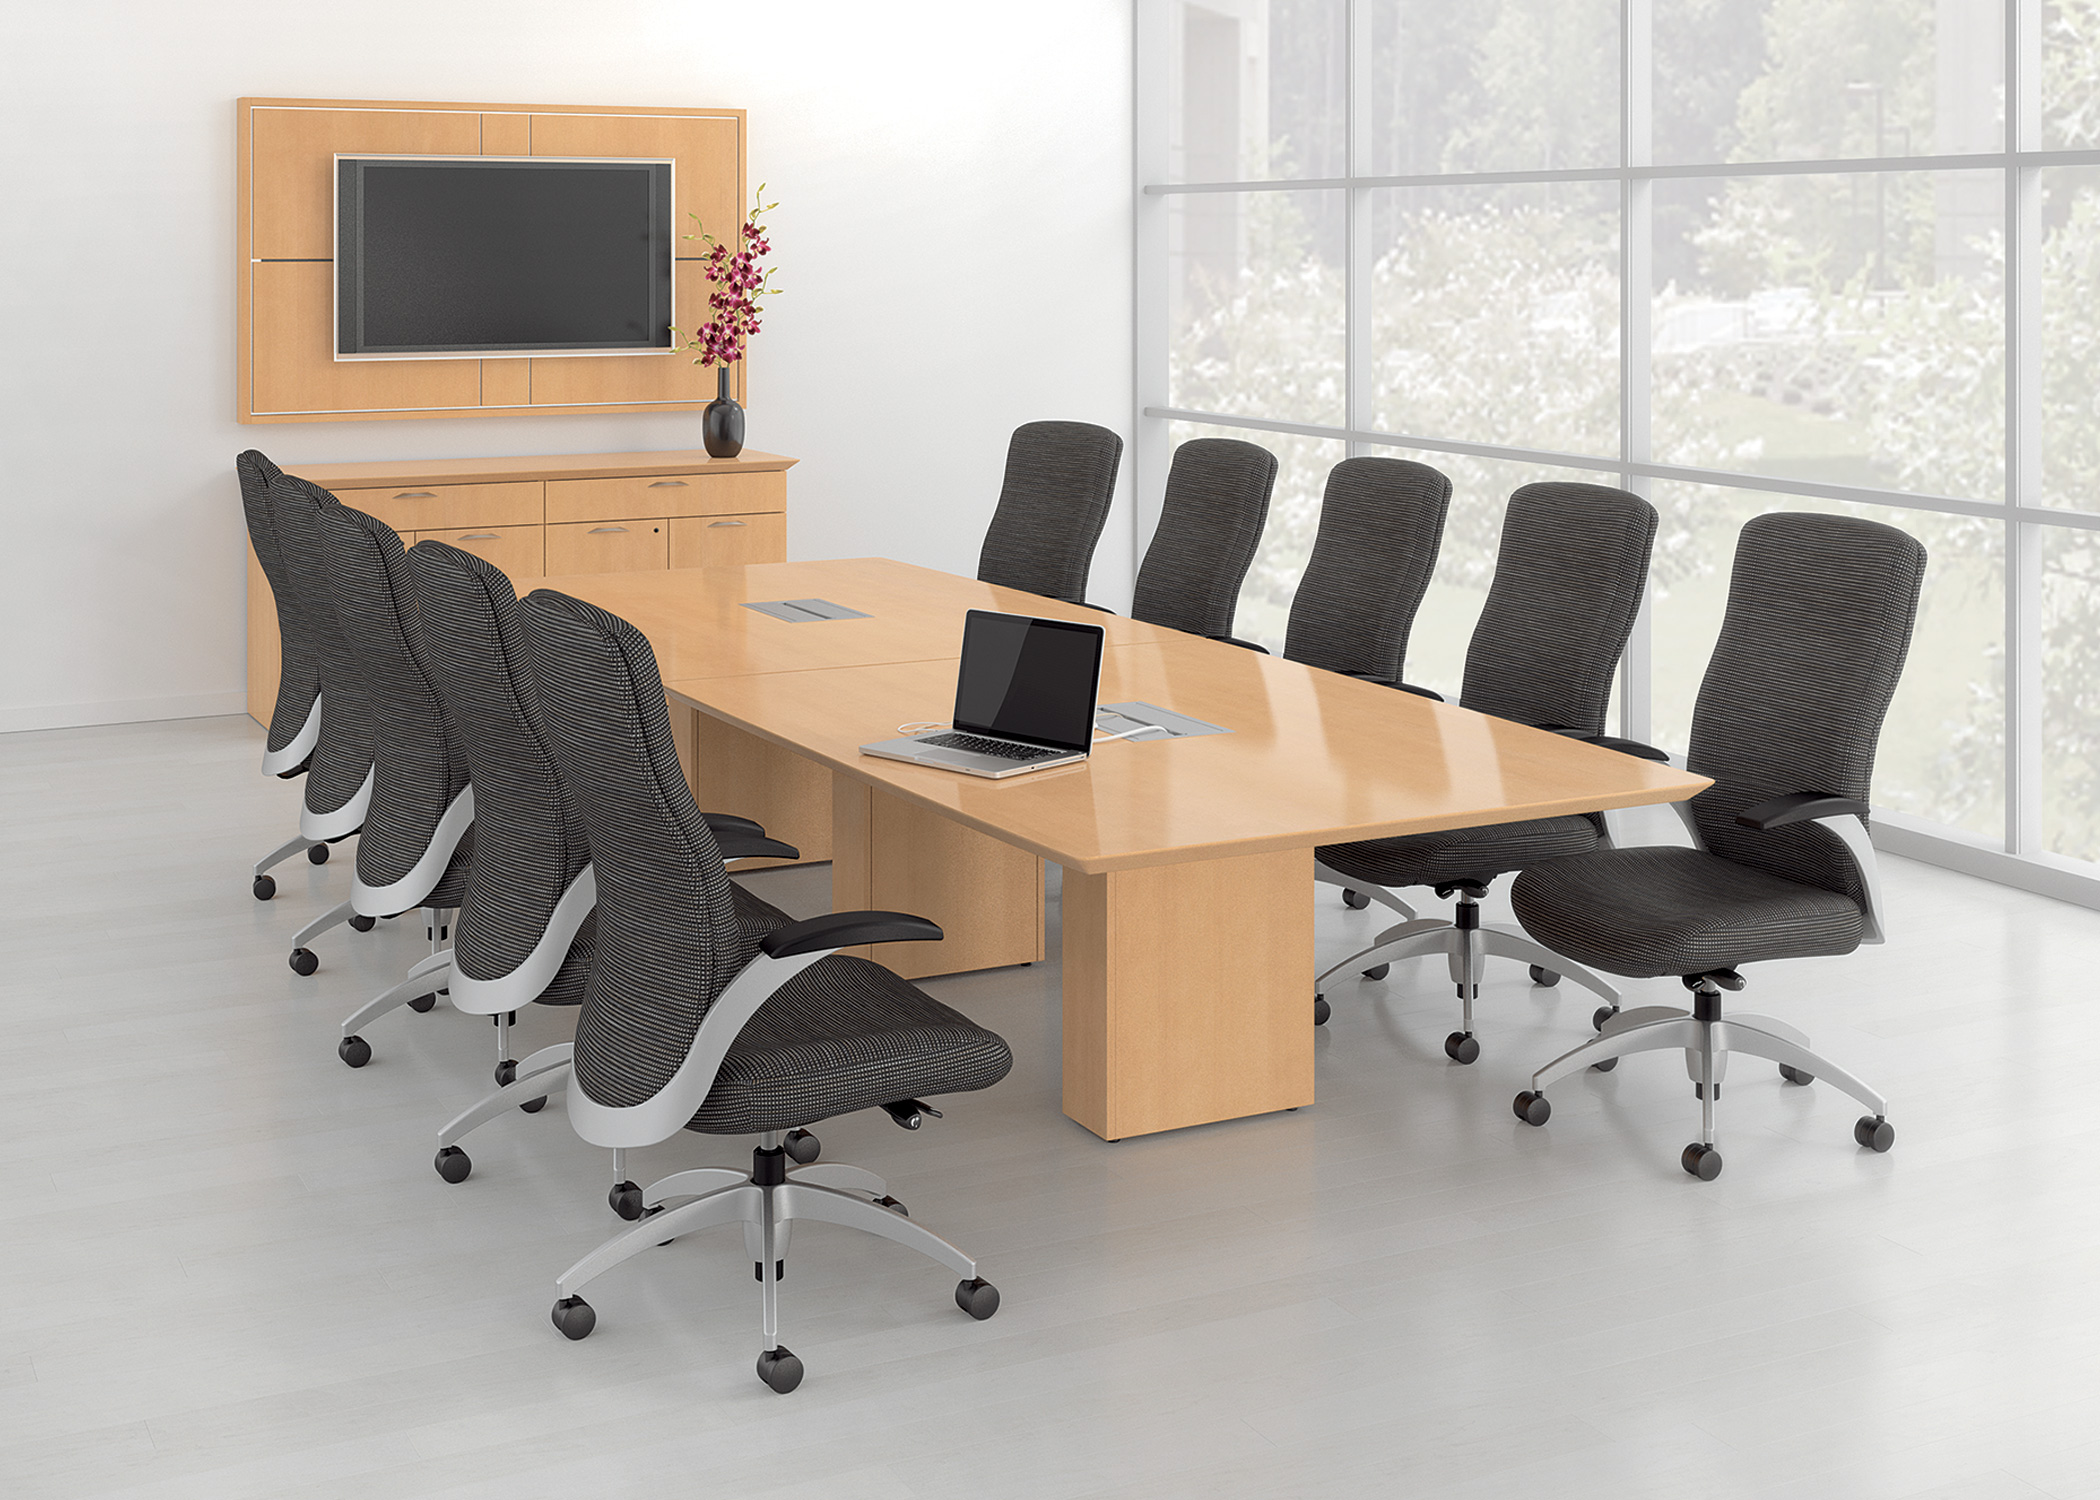 conference tables and chairs wegner circle chair products national office furniture clever